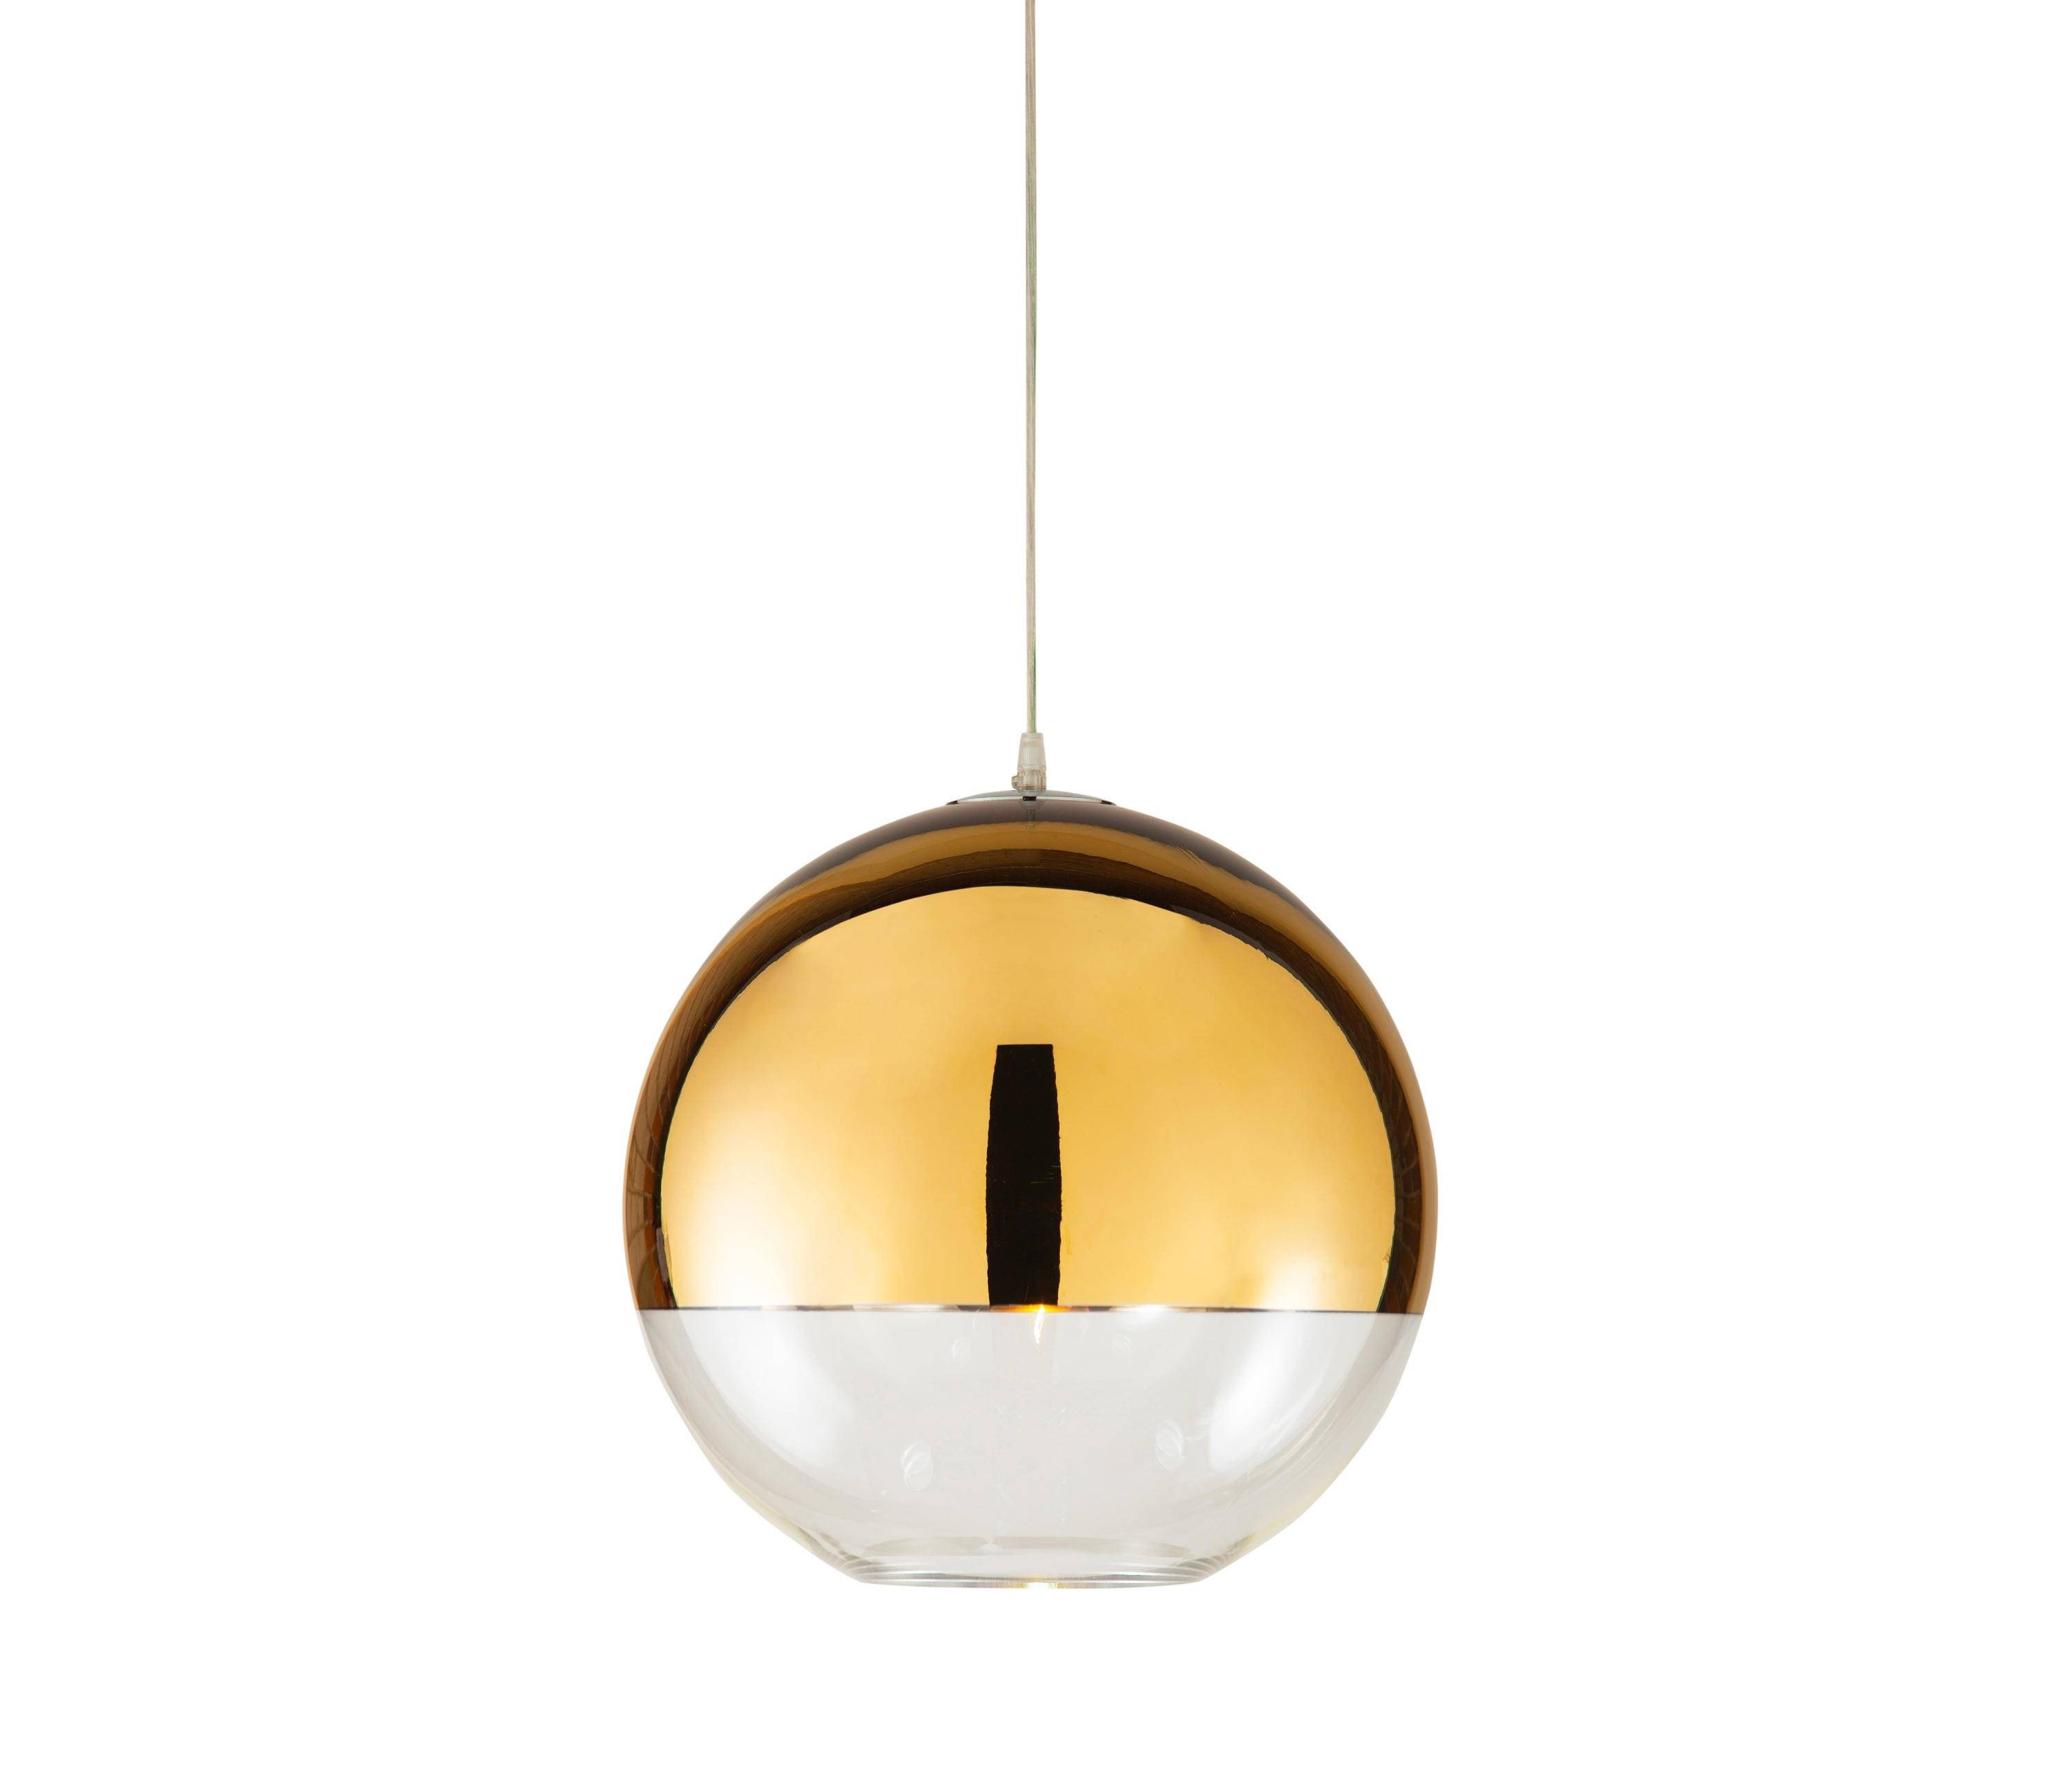 Bolio Suspension - General Lighting From Viso | Architonic pertaining to Bolio Pendant Lights (Image 11 of 15)